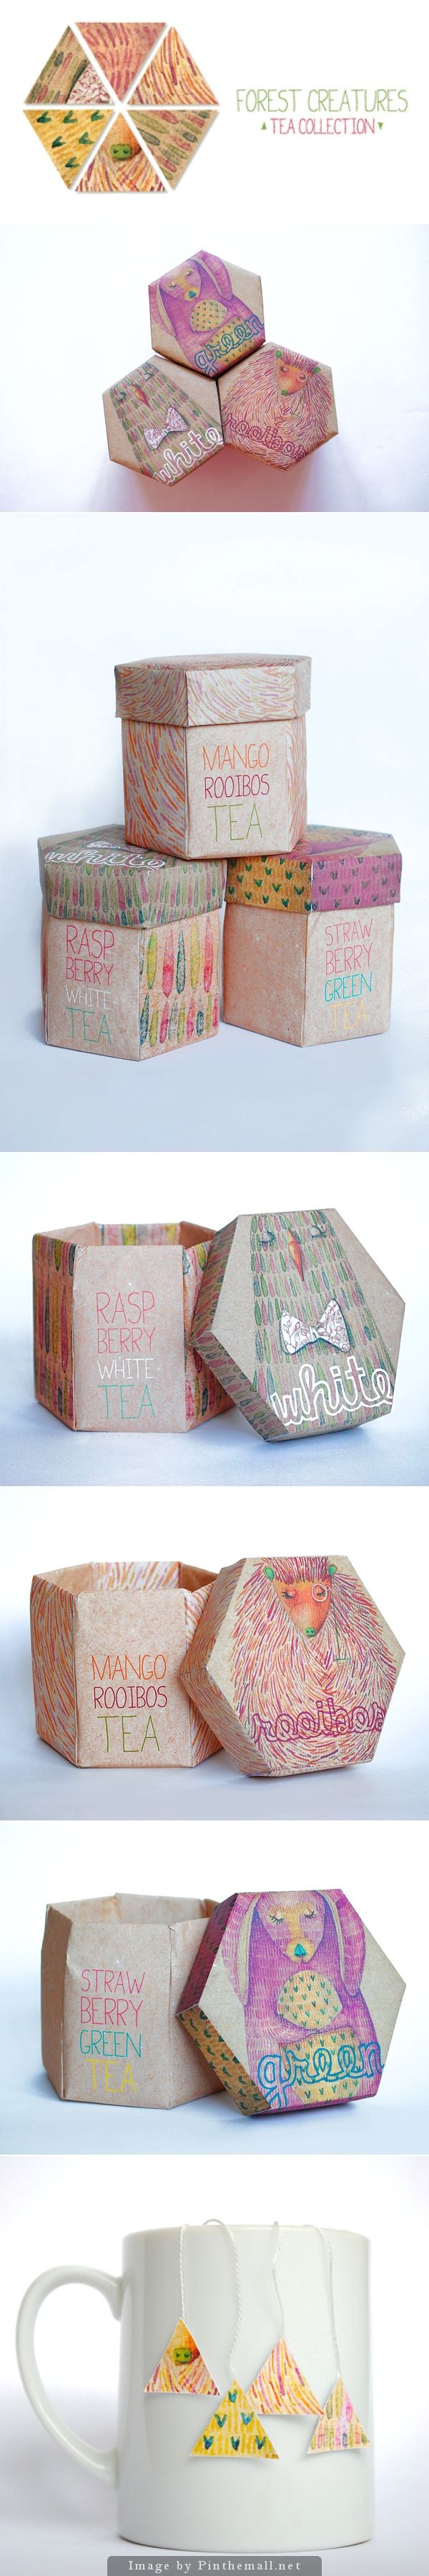 Packaging / Forest creatures tea collection PD #creative #packaging / pinned by www.amgdesign.co.nz